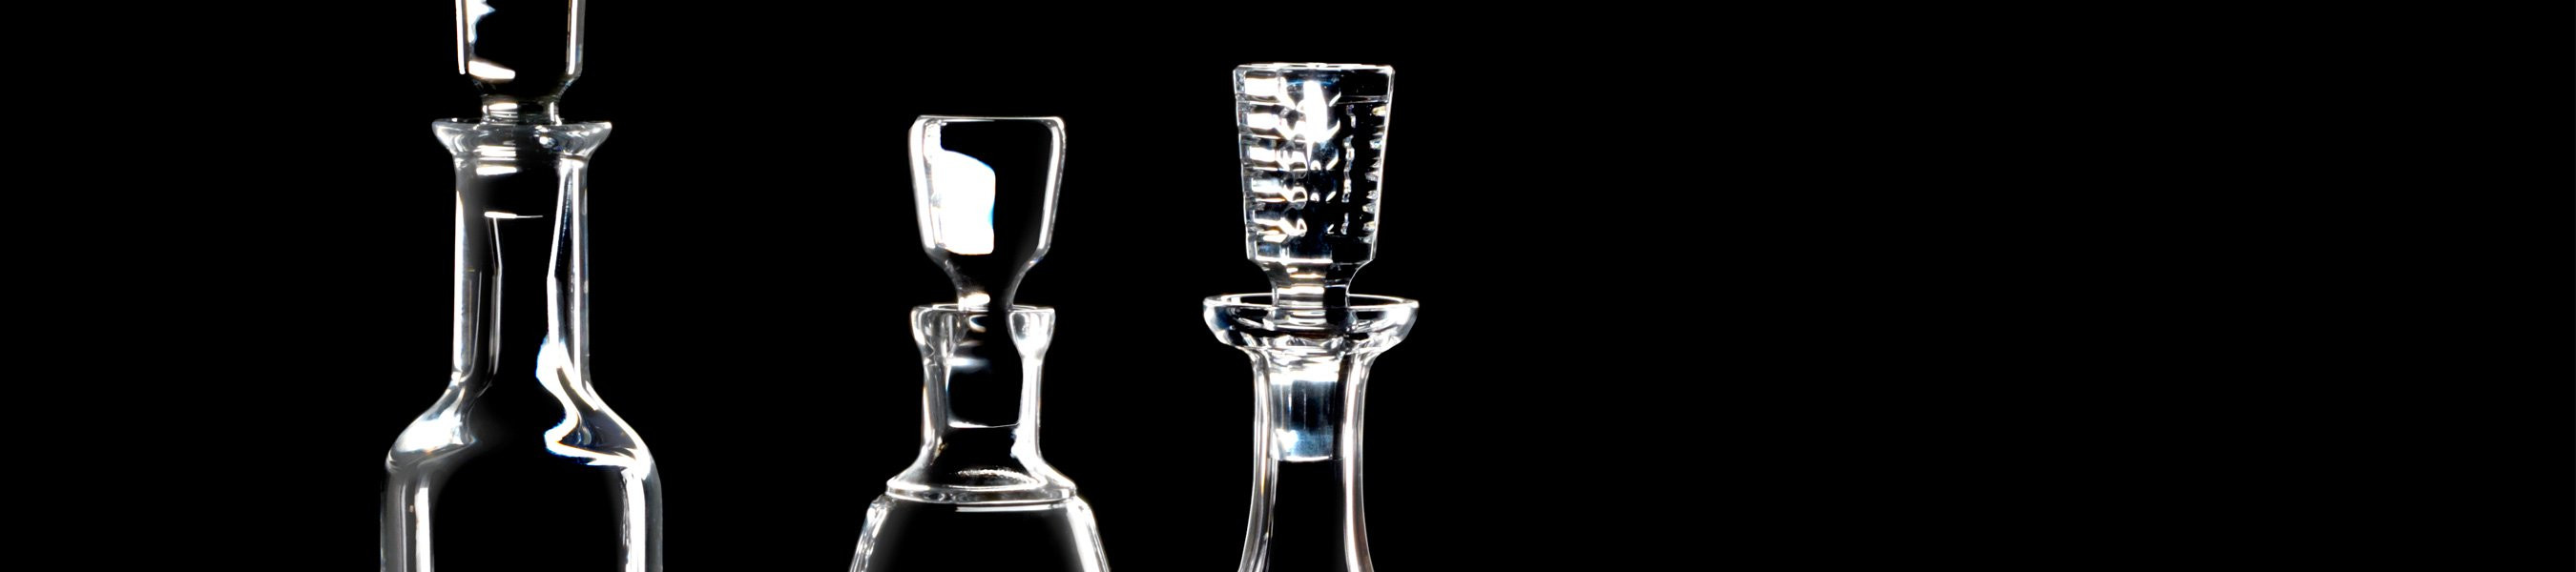 27 Stylish Polonia Lead Crystal Vase 2021 free download polonia lead crystal vase of crystal decanters pitchers carafes waterforda us for waterford crystal decanters pitchers carafes